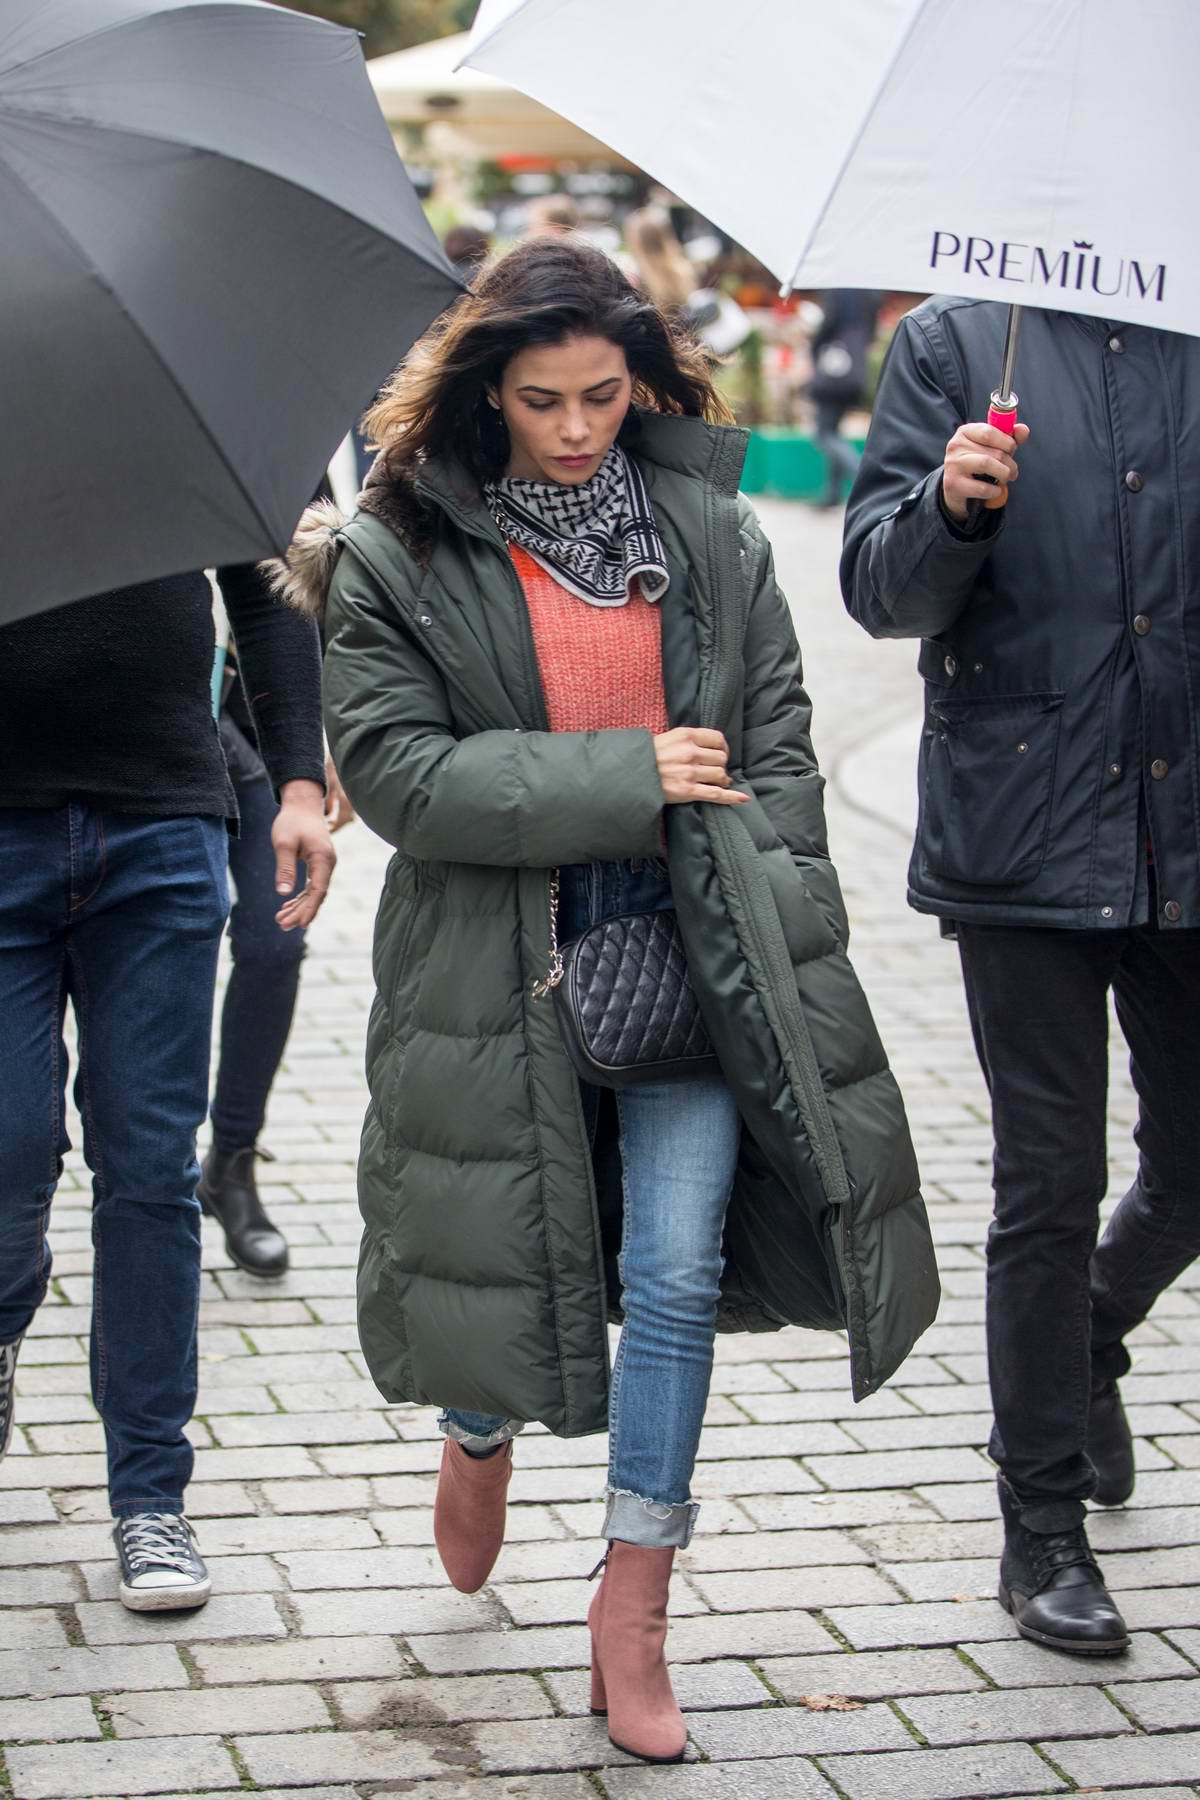 Jenna Dewan Tatum spotted in front of the Titanic Hotel in Berlin, Germany